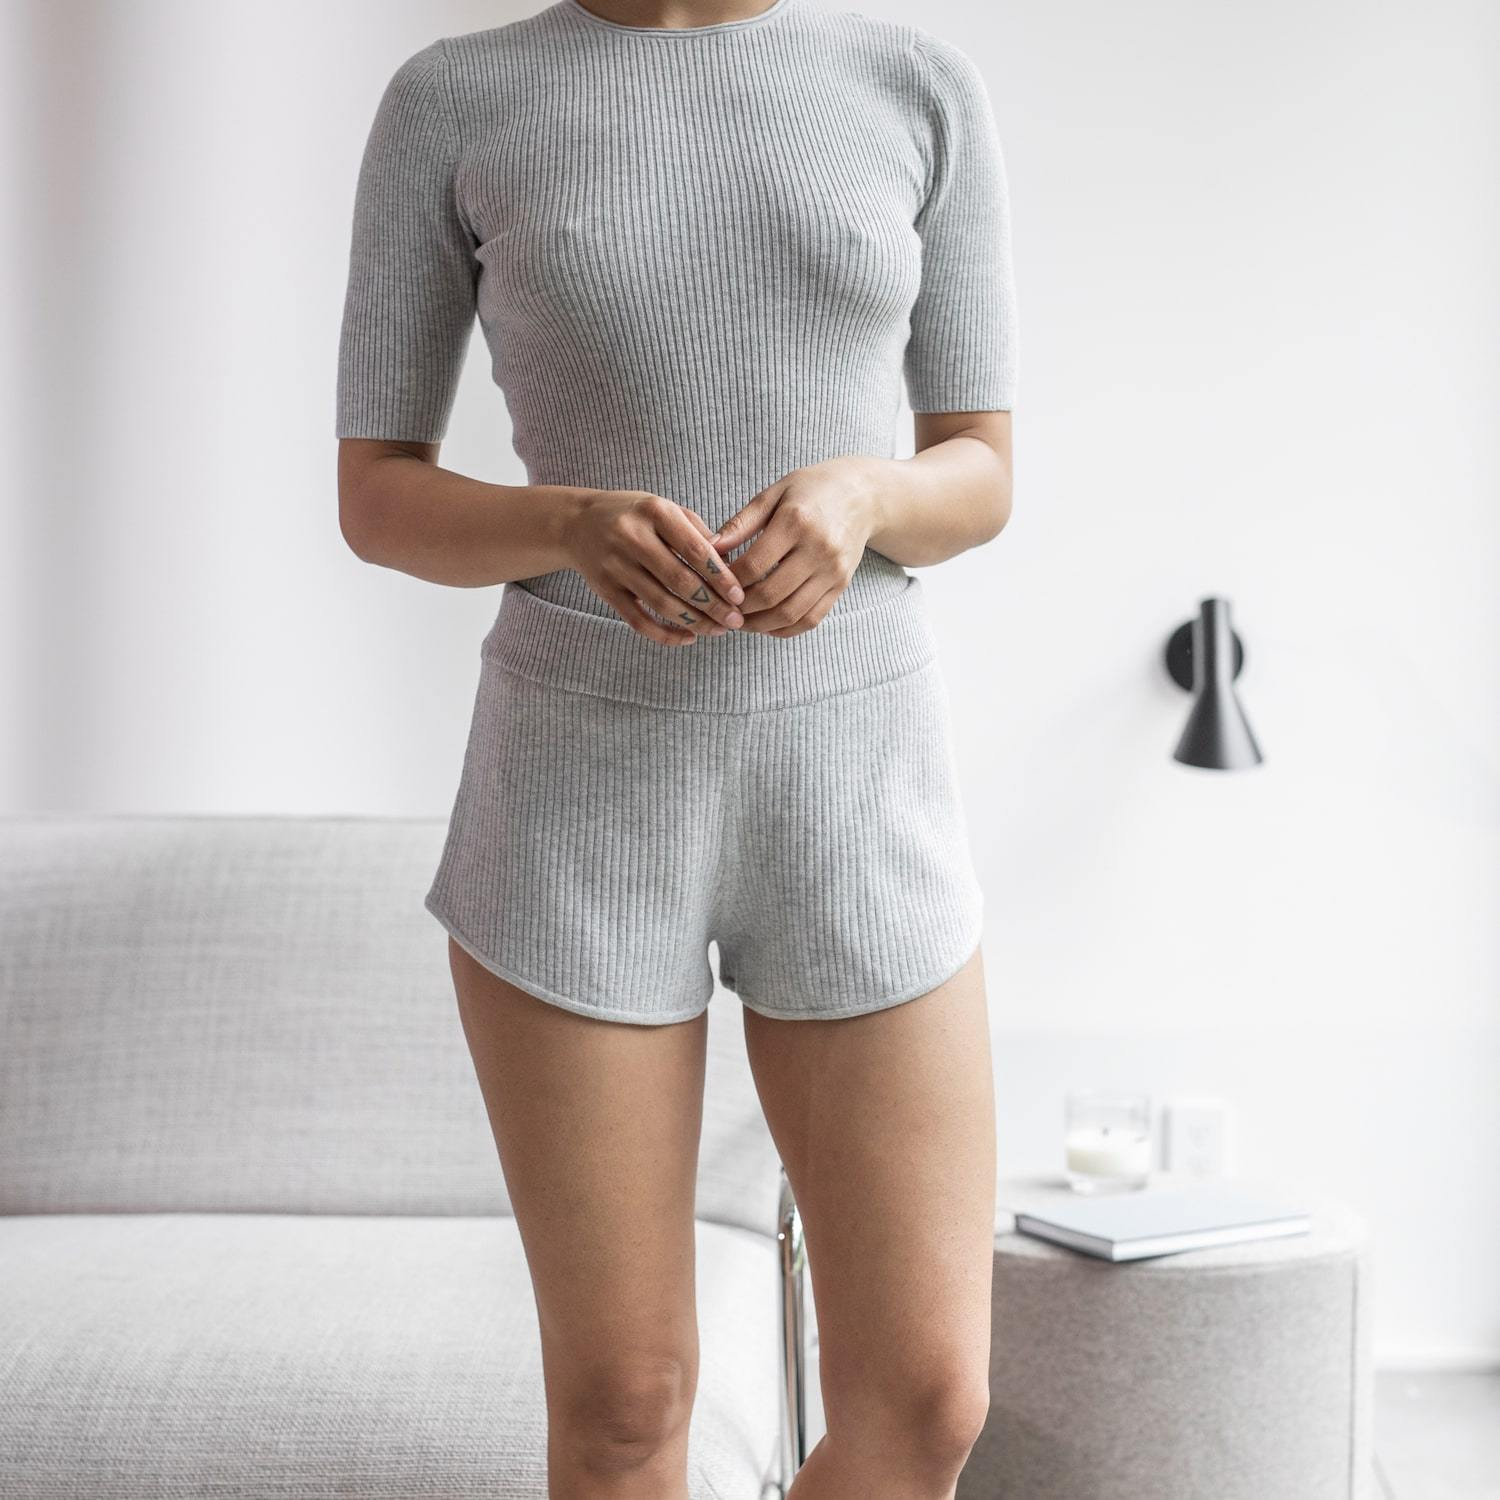 Lunya Sleepwear Cozy Cotton Silk Short - #Chroma